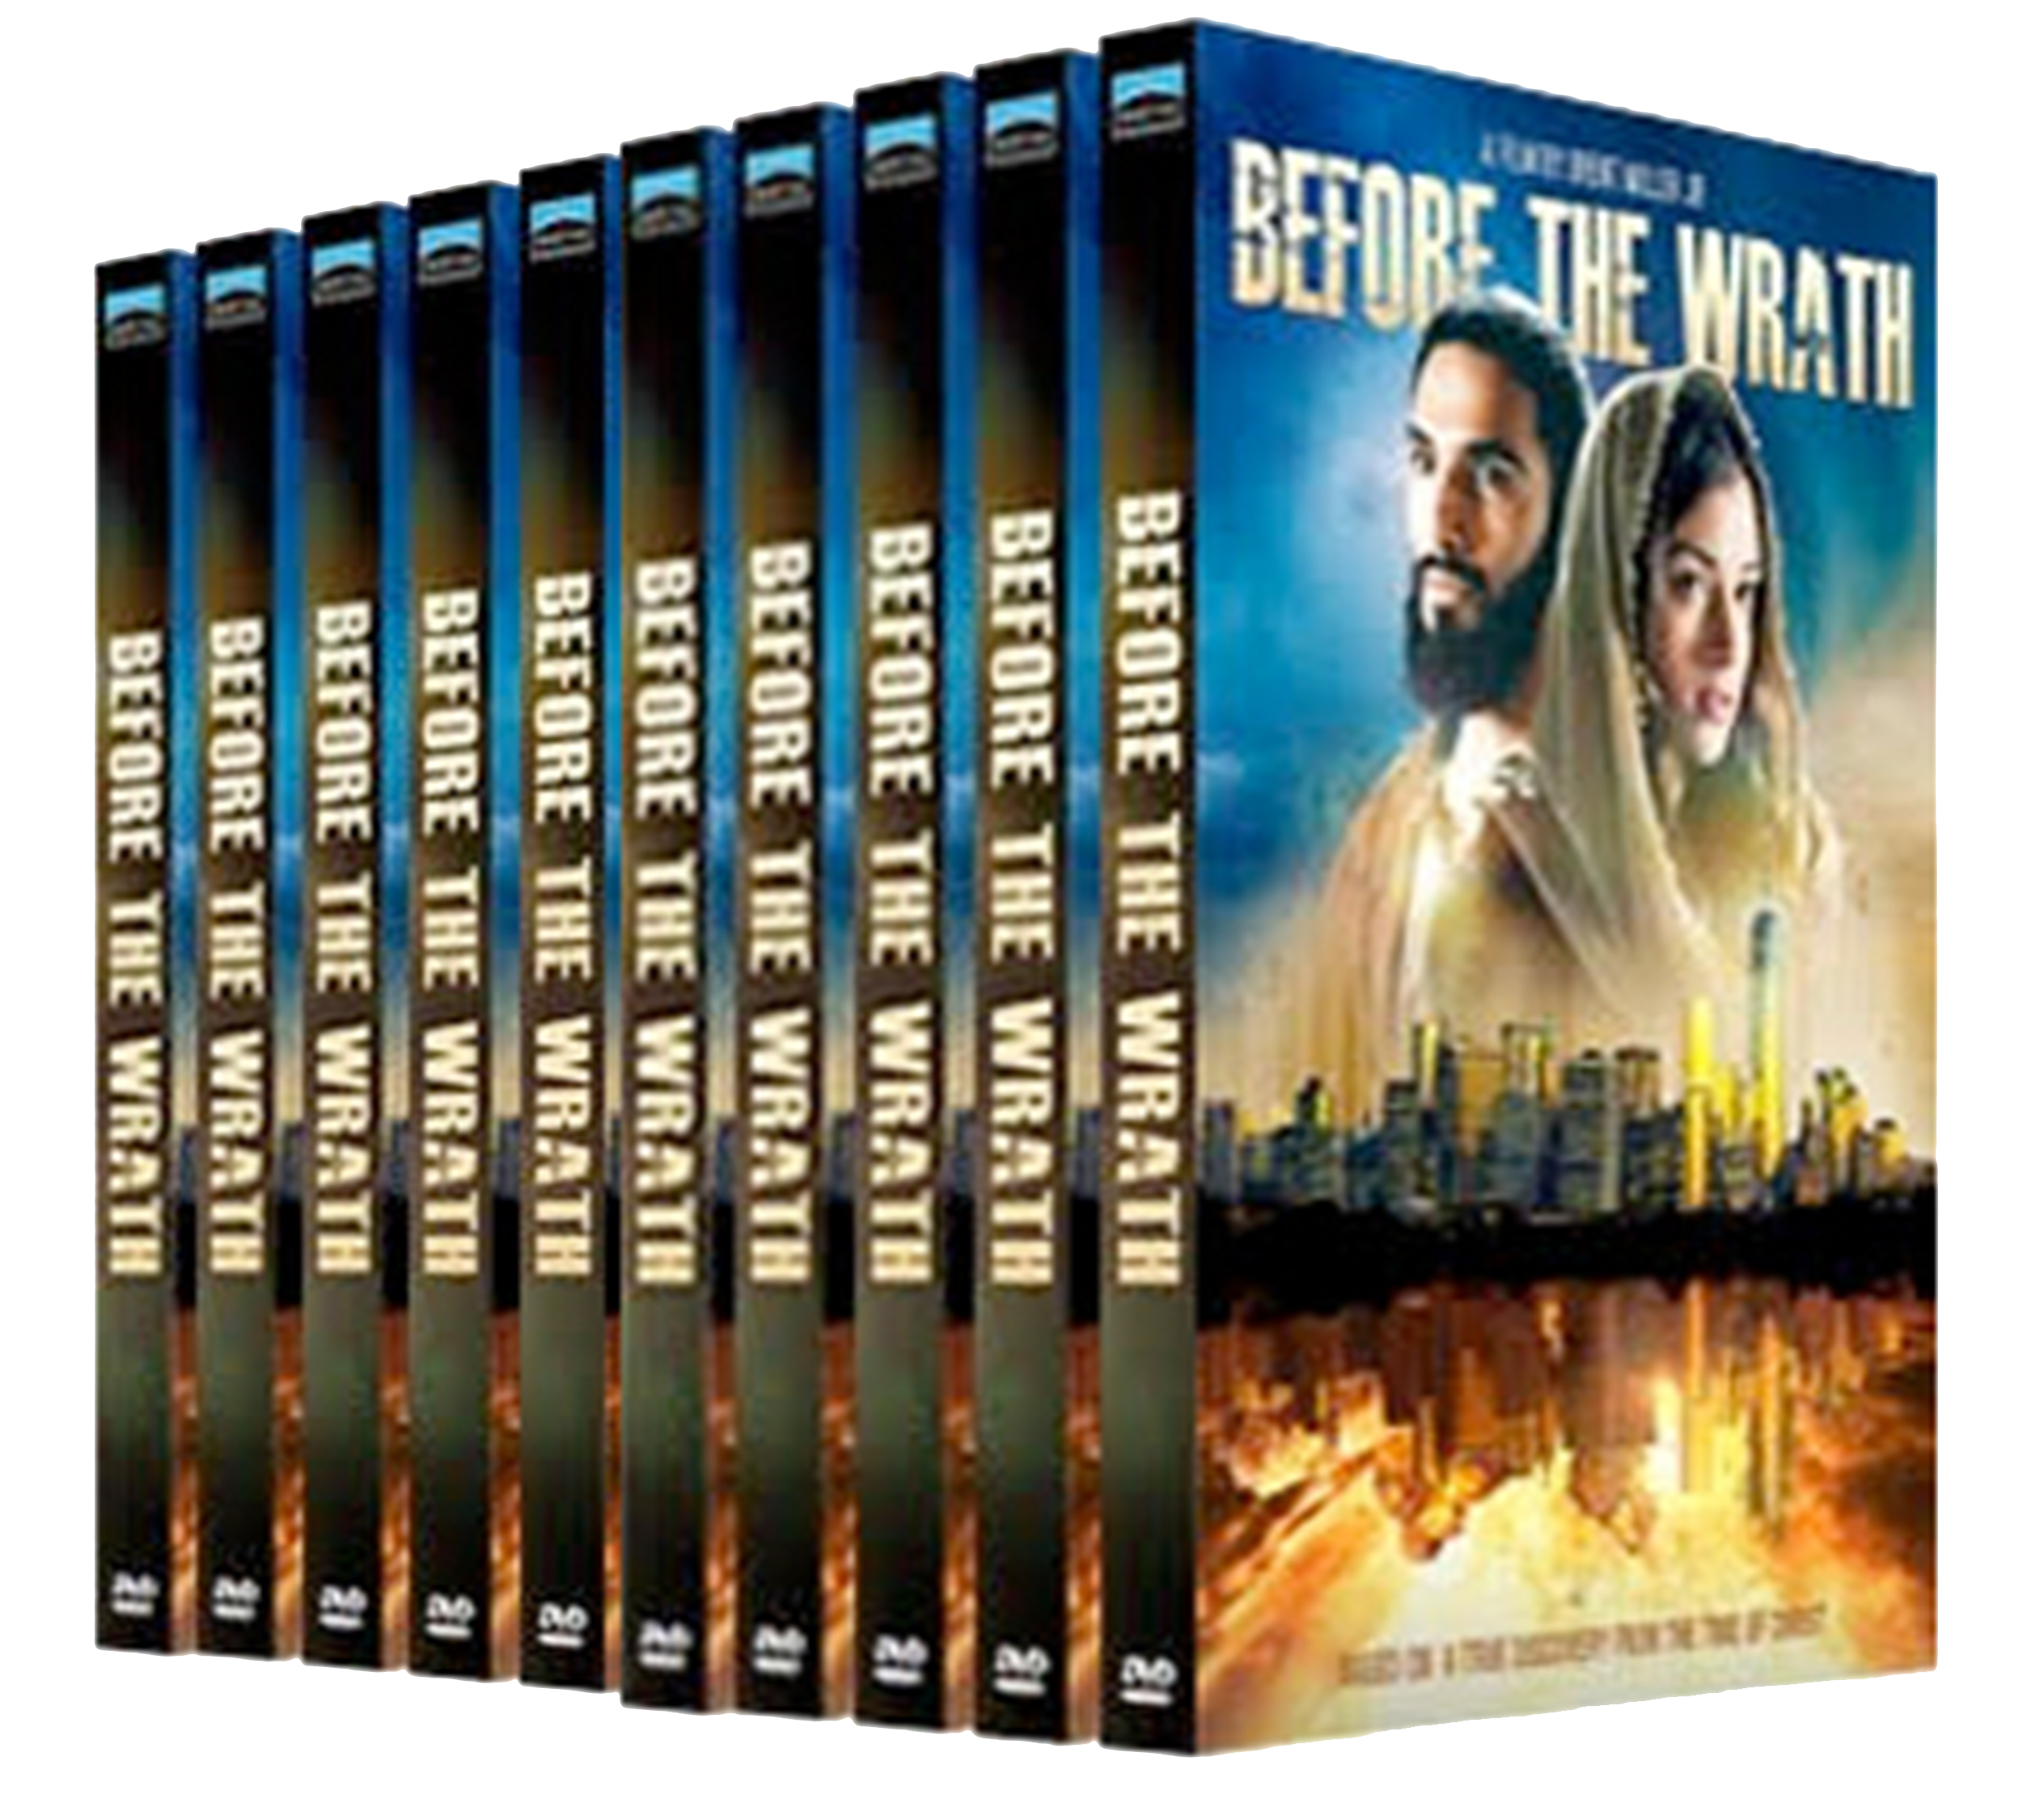 Before The Wrath - 10 DVD pack